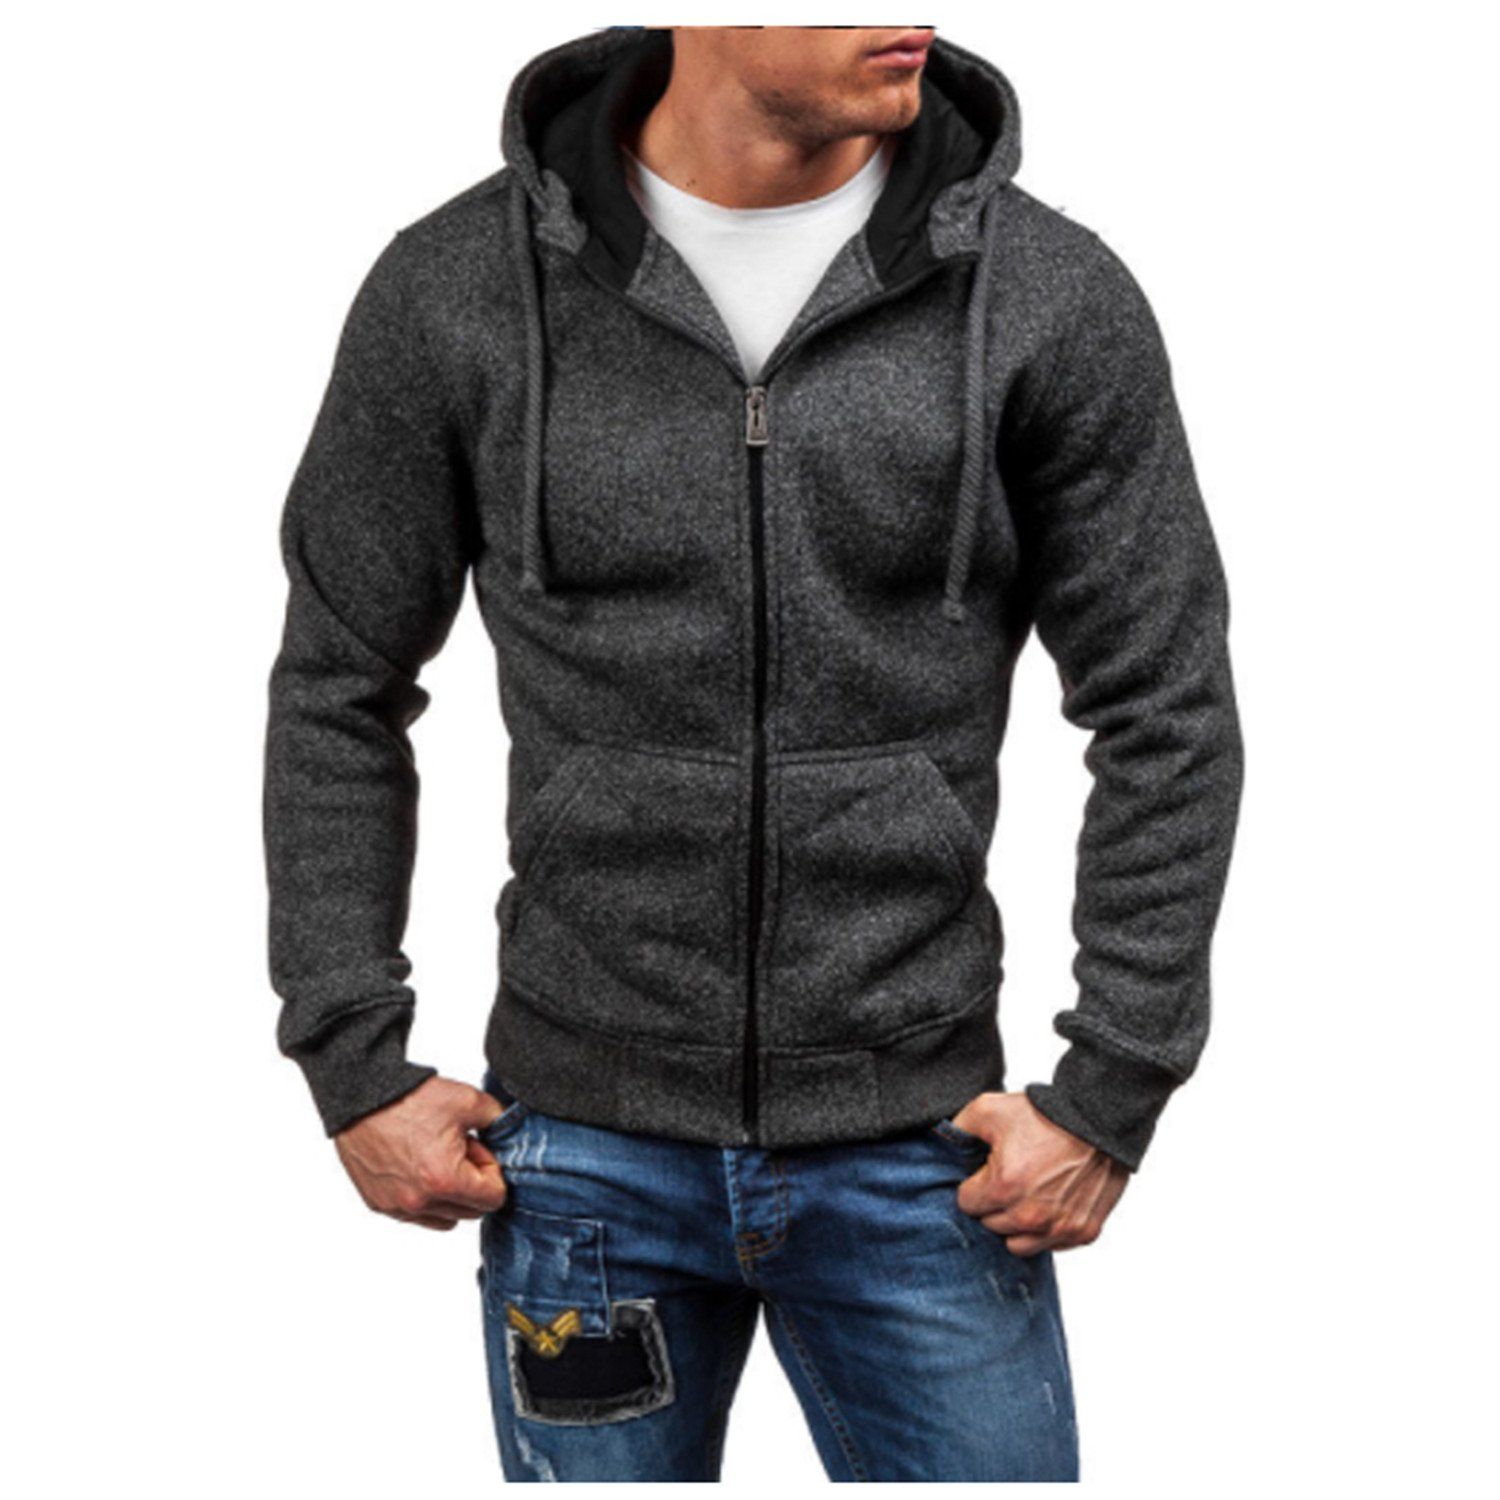 Beautifullight Cool Men Hoodies New Sudaderas Hombre Hip Hop Mens Solid Zipper Hoodie Sweatshirt Slim Fit Men Hoody Size XXL at Amazon Mens Clothing store: